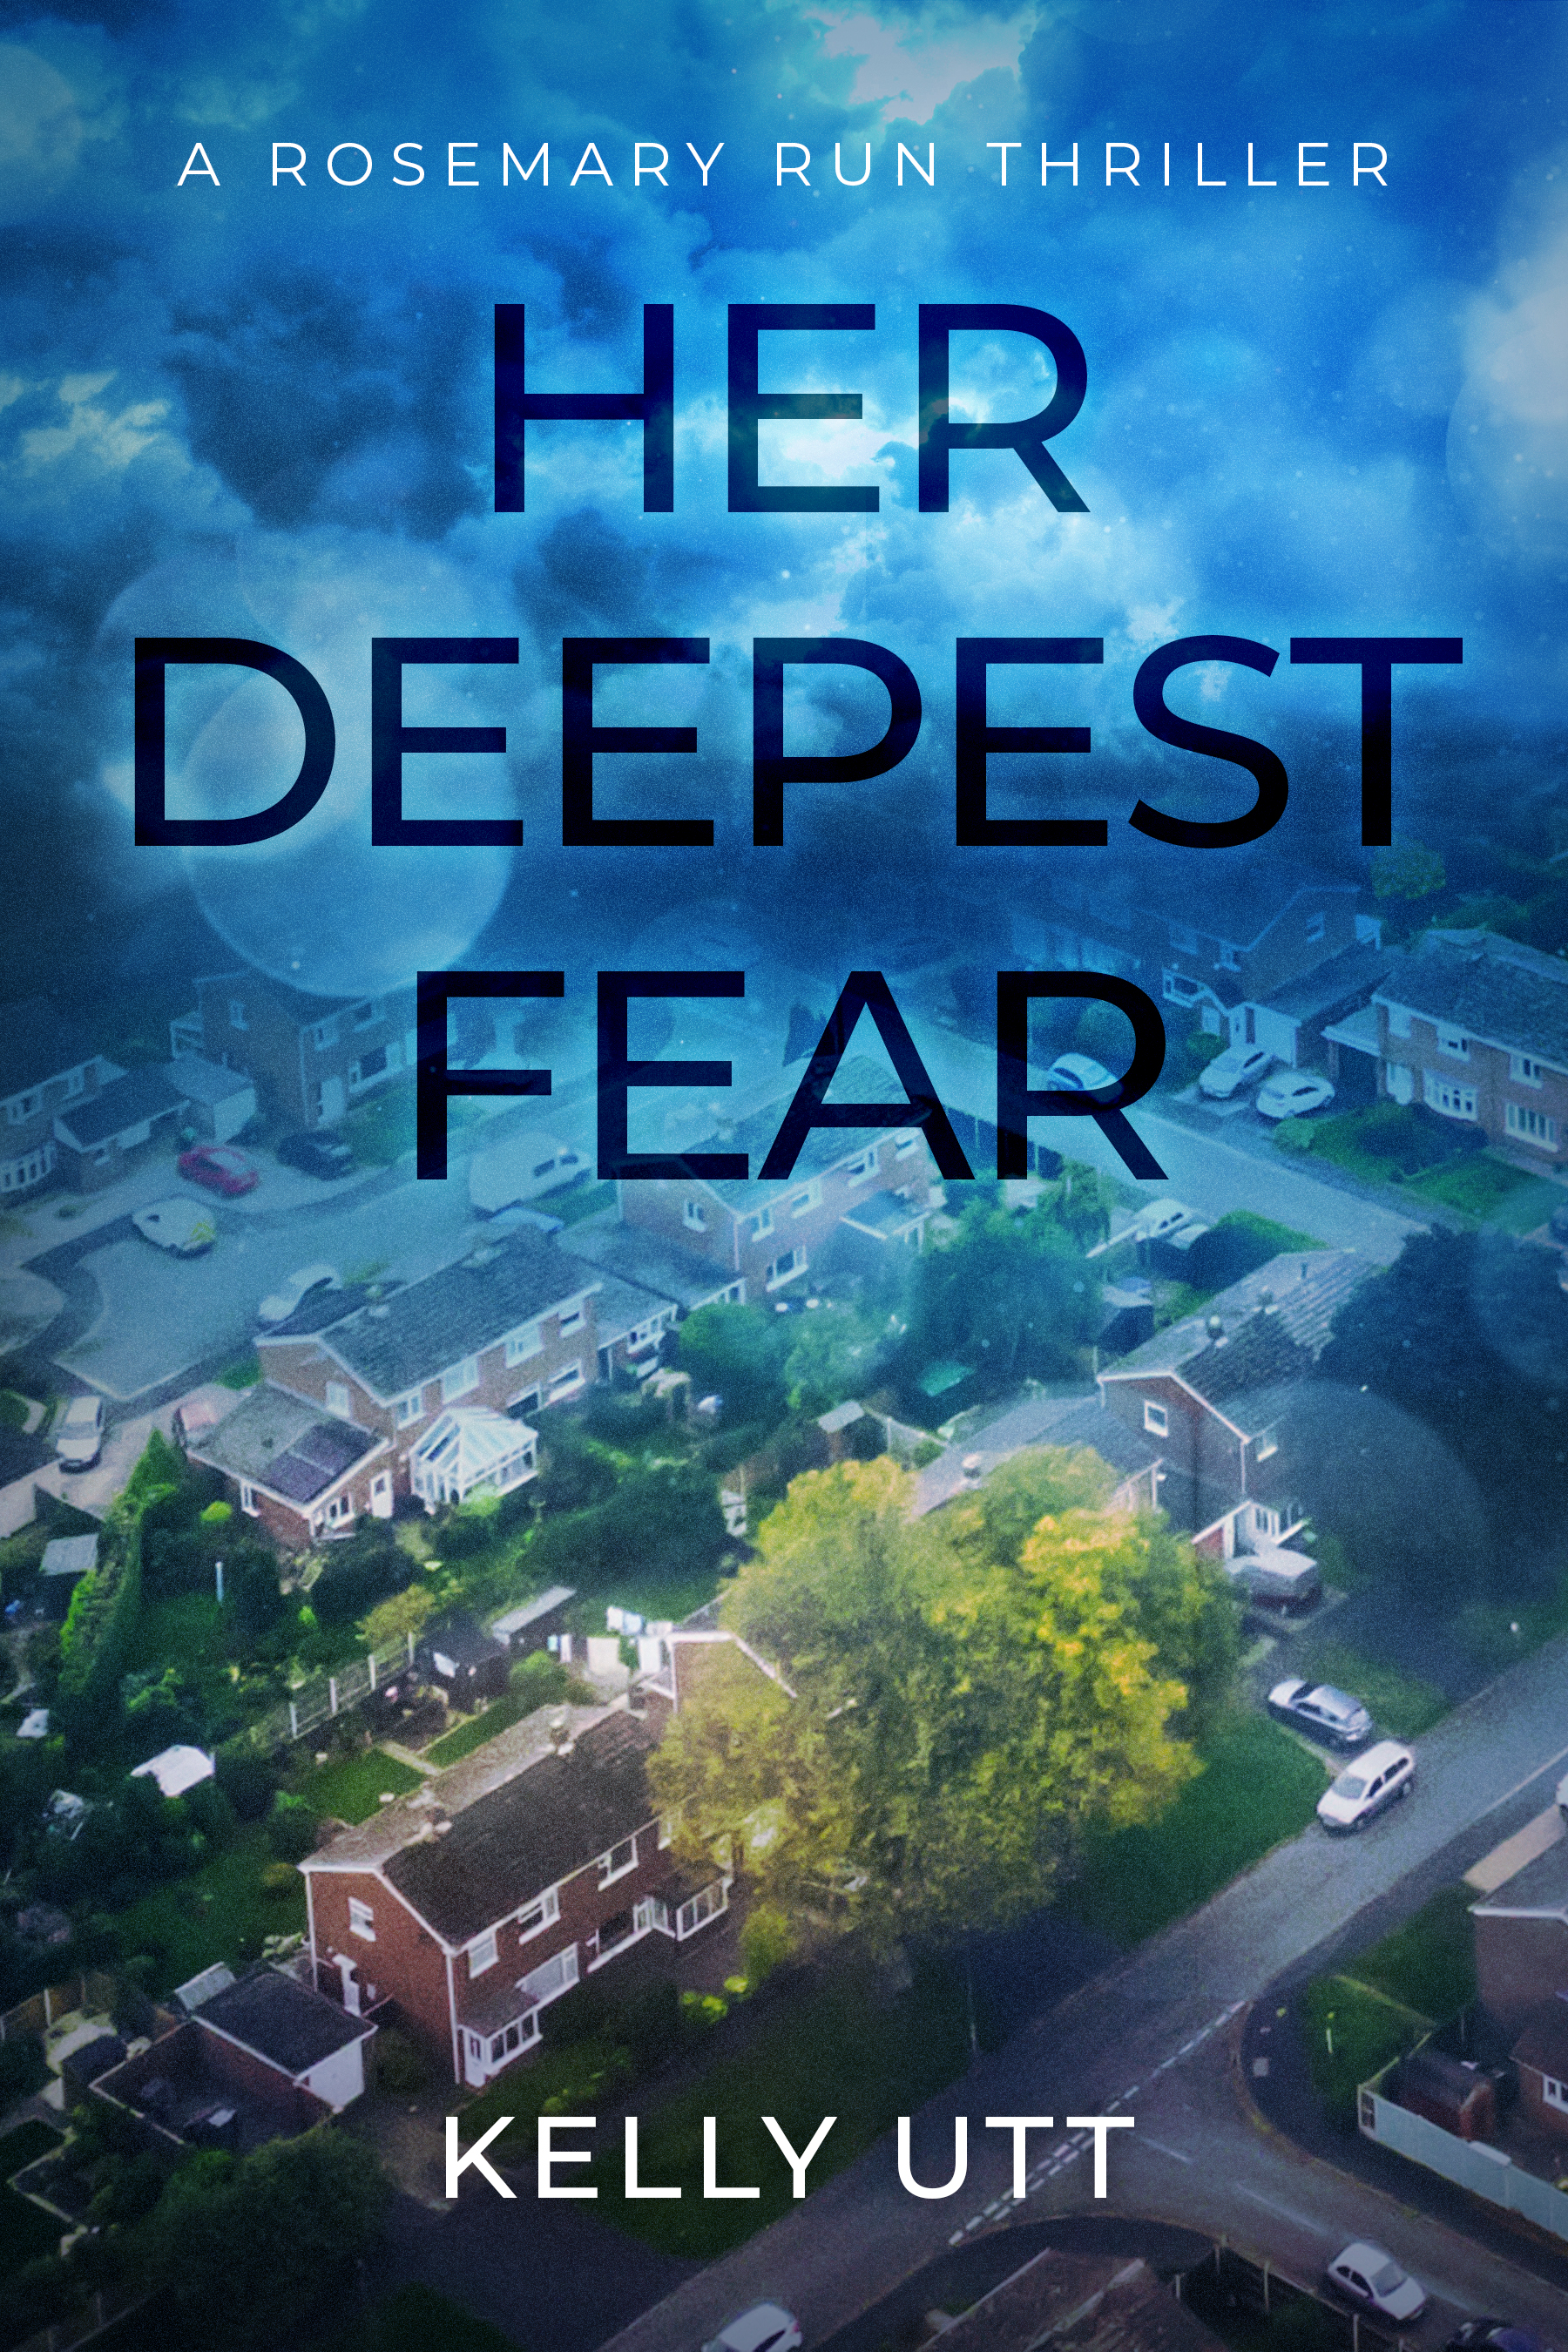 her-deepest-fear-by-kelly-utt.jpg